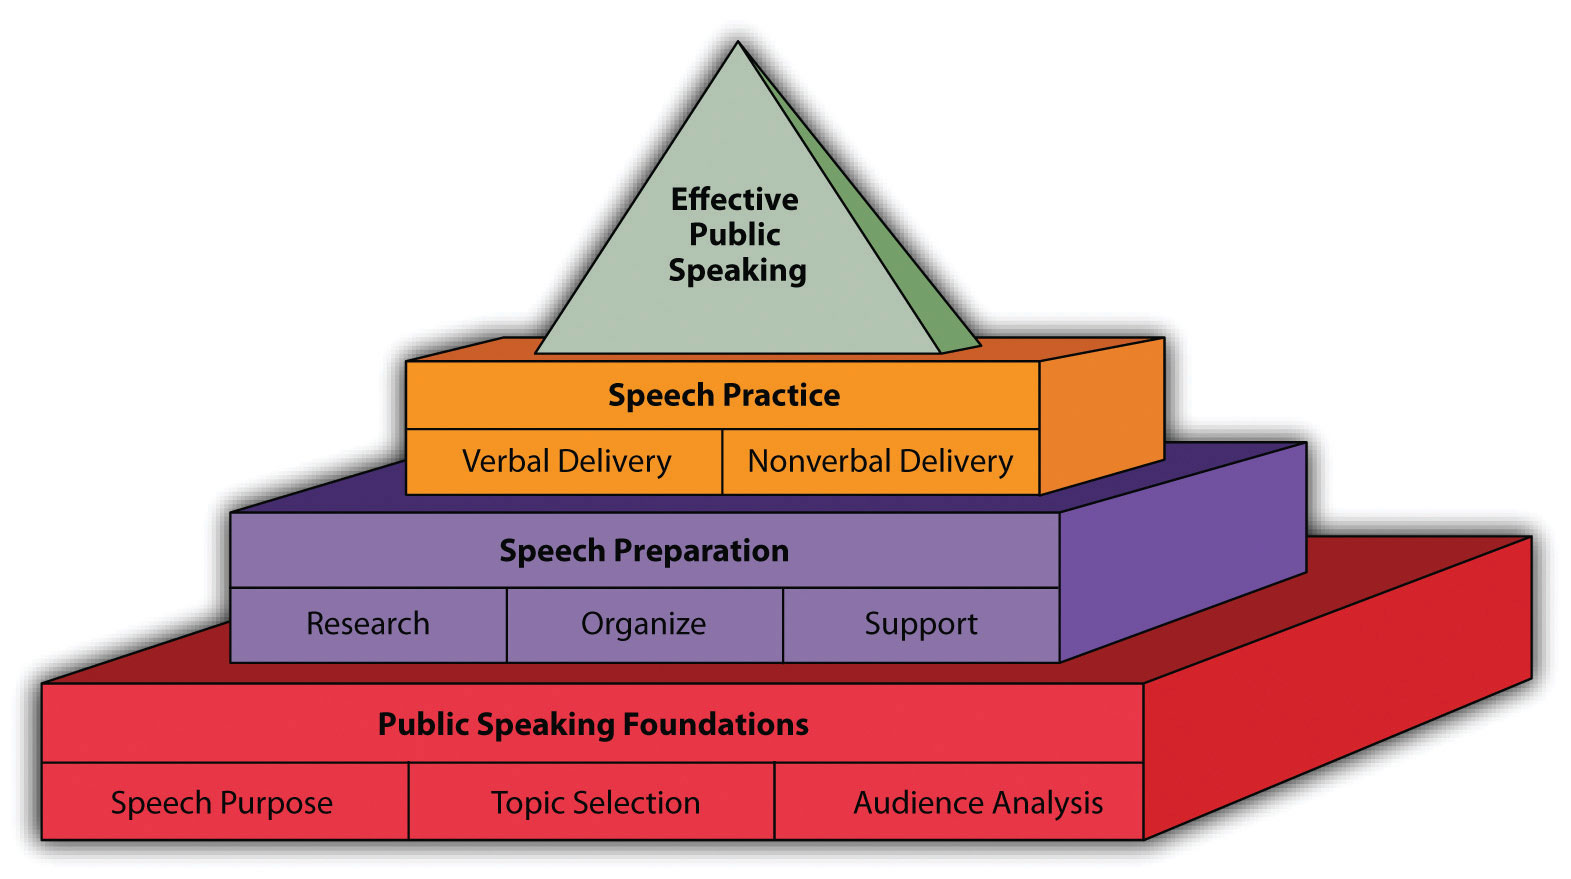 Public Speaking Pyramid: Speech Practice (Verbal and Nonverbal Delivery), Speech Preparation (Research, Organize, and Support), and Public Speaking Foundations (Speech Purpose, Topic Selection, and Audience Analysis).